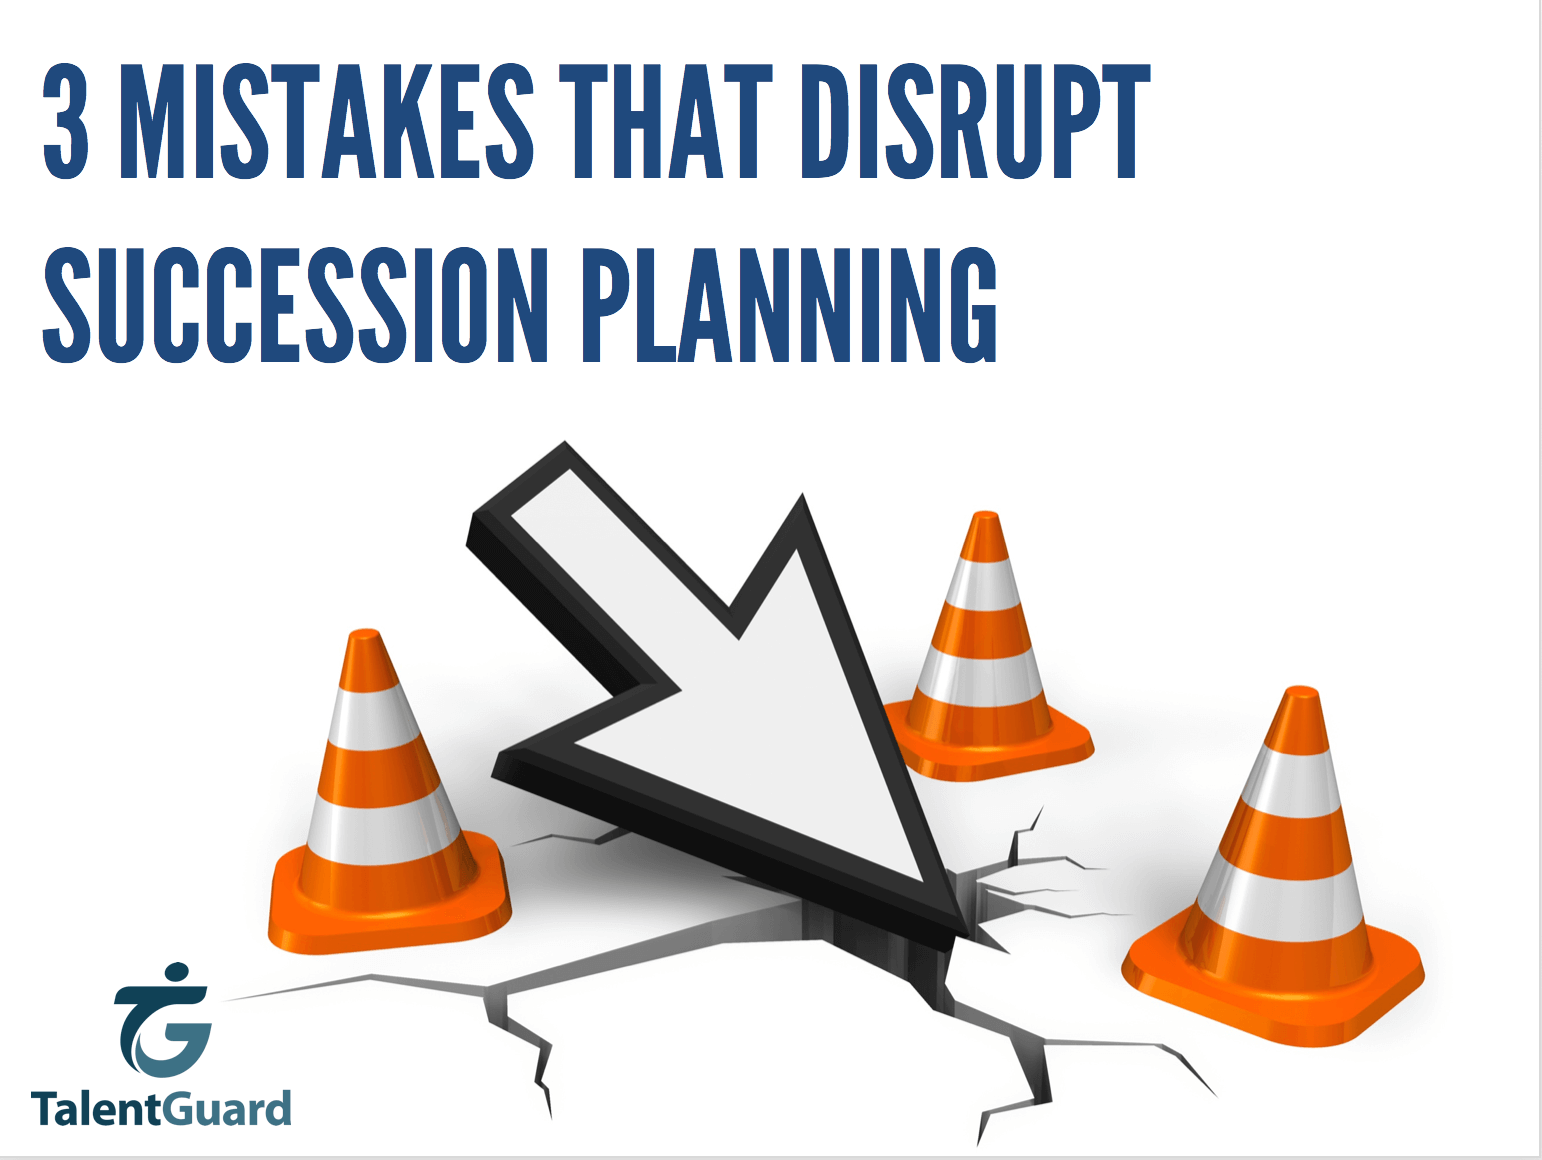 Mistakes That Disrupt Your Succession Planning Process